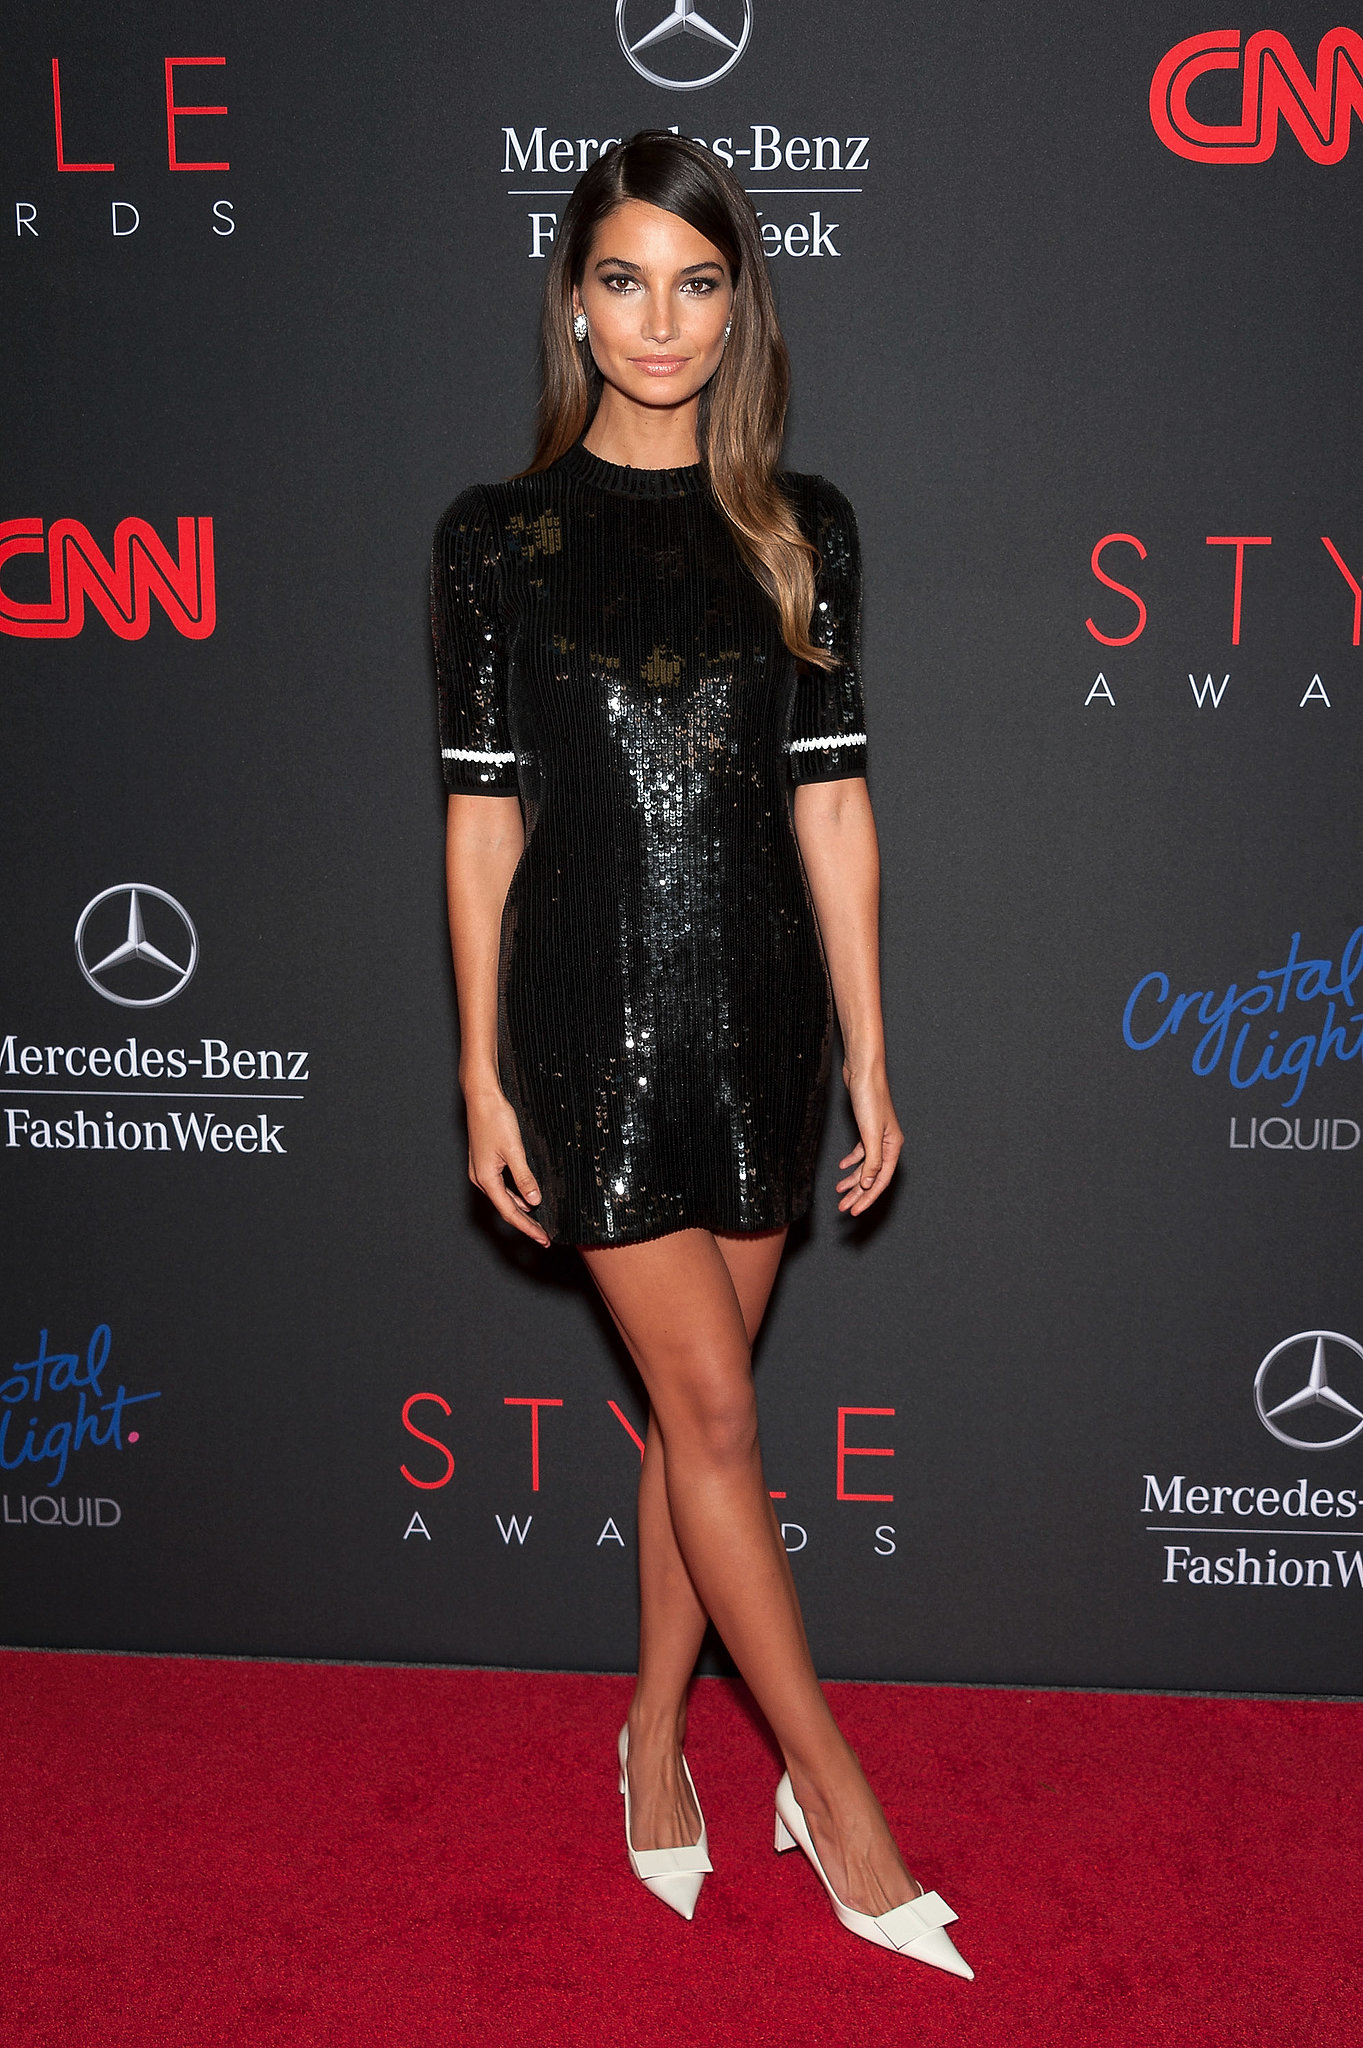 Lily Aldridge dazzled in a sequined Louis Vuitton minidress on the Style Awards red carpet.